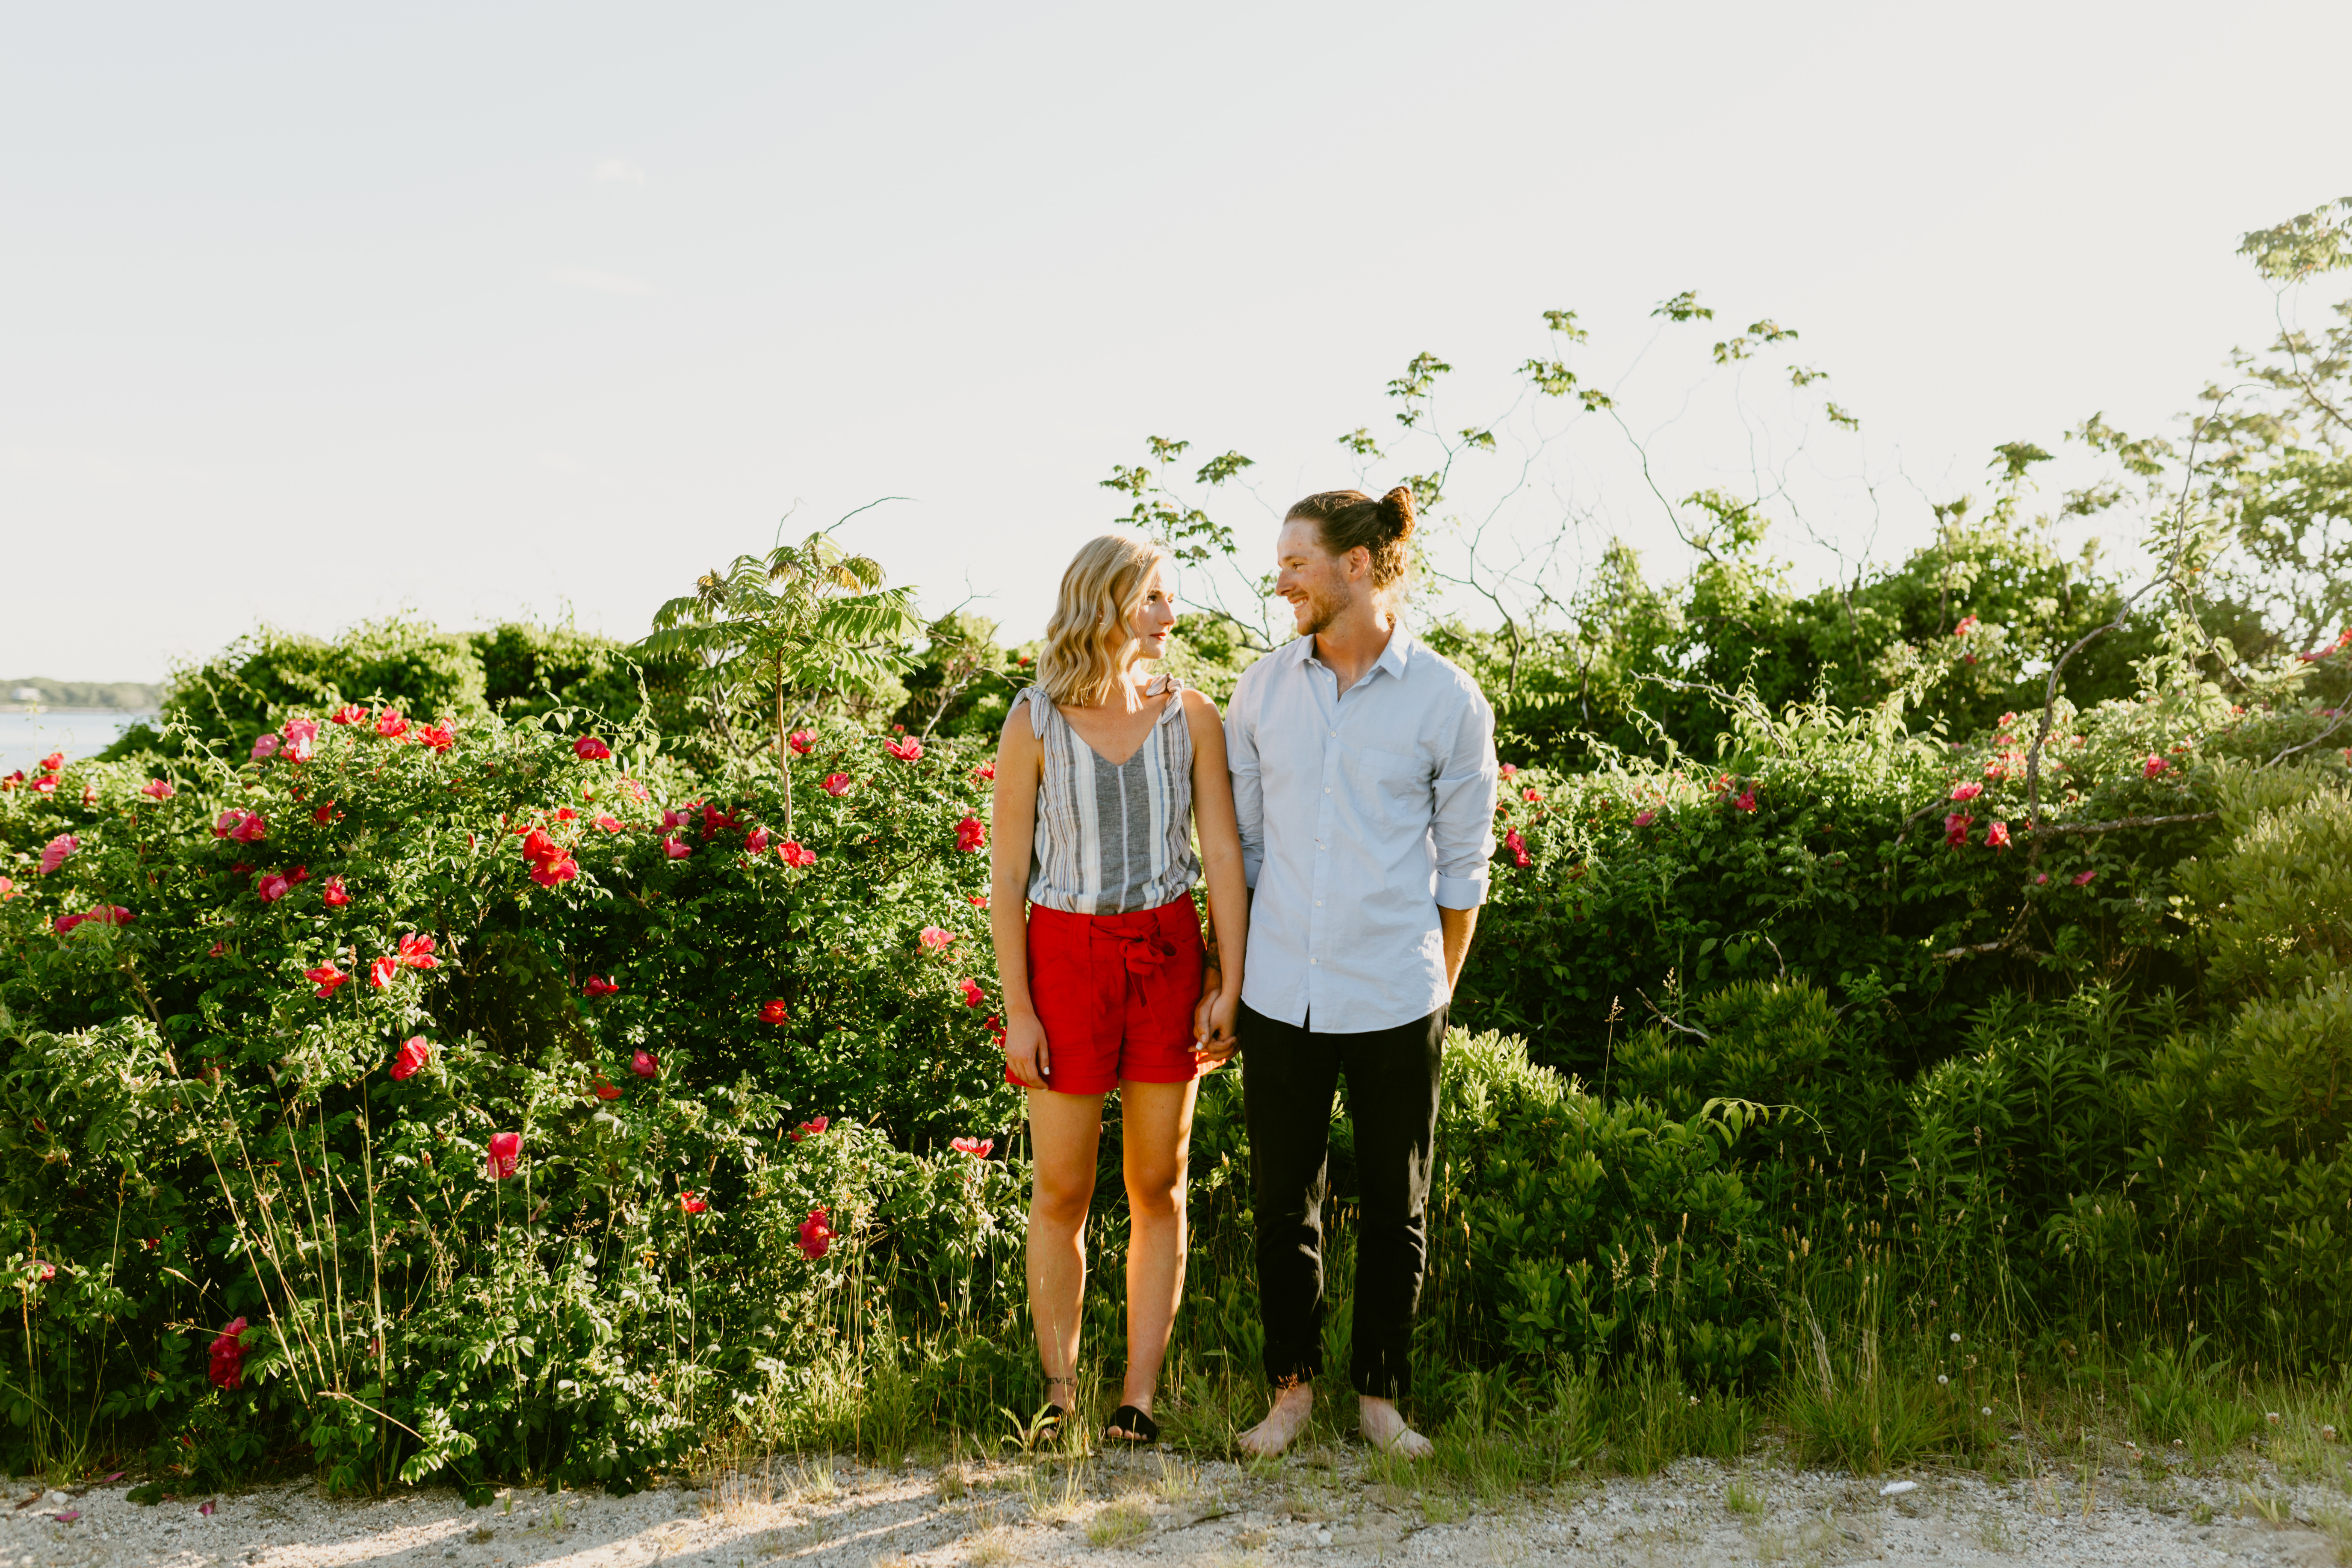 Sunsest Beach Engagement Session